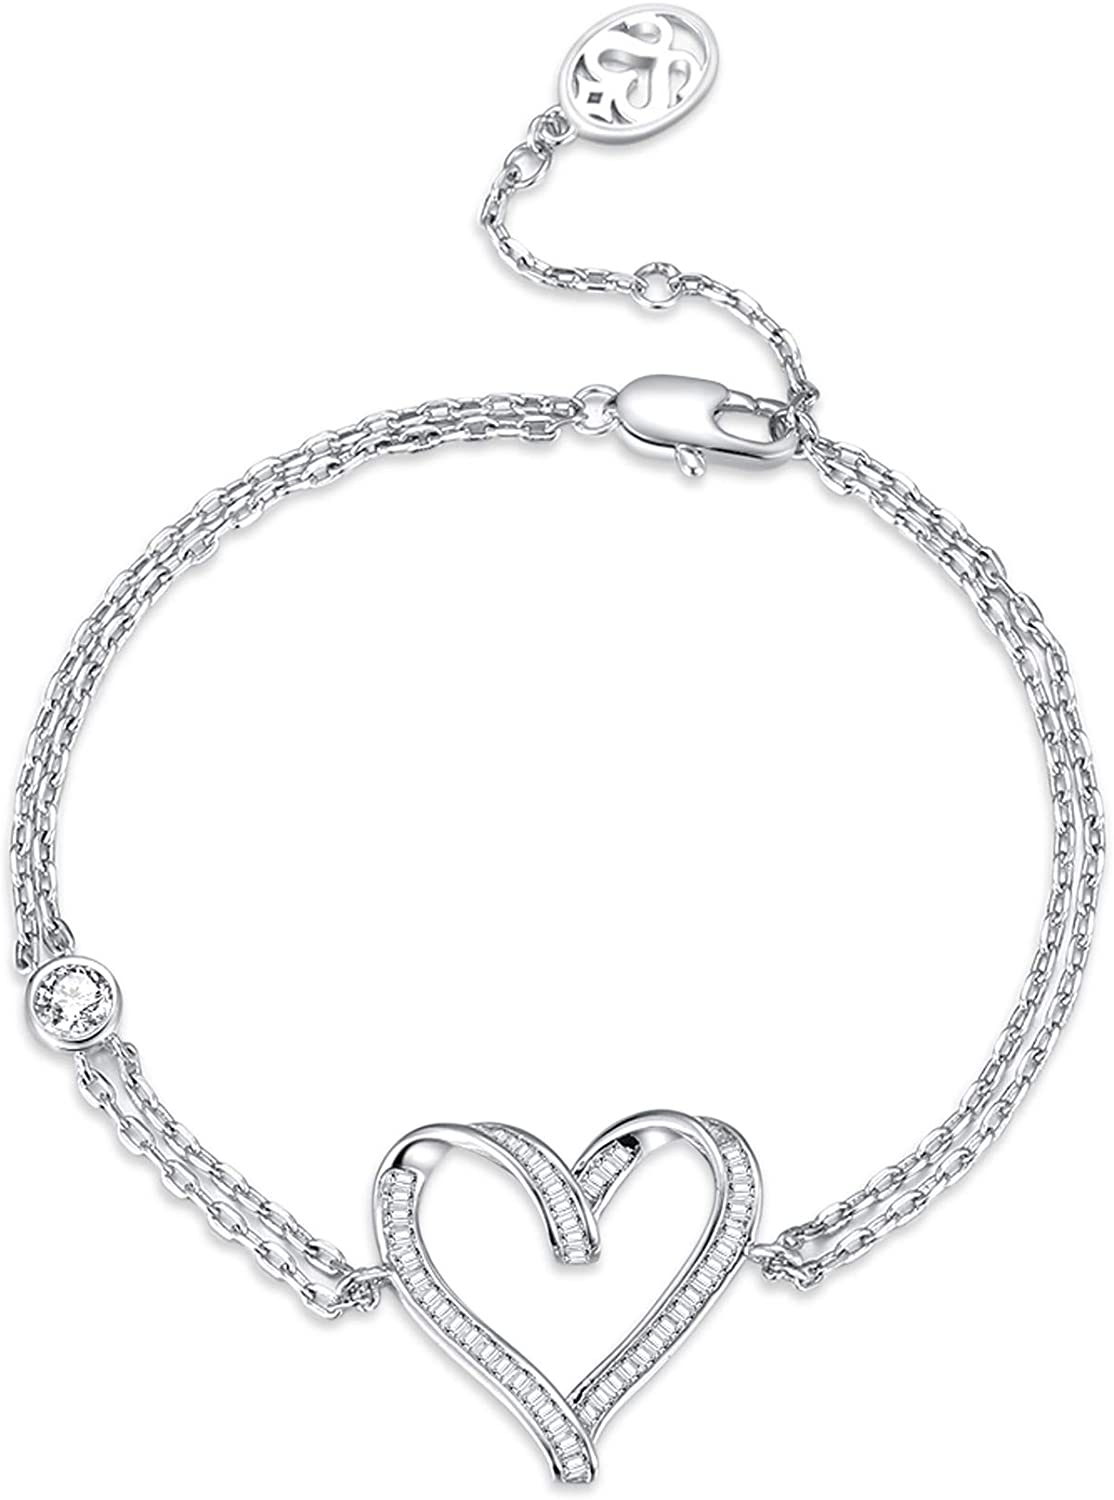 SISMIURRA S925 Sterling Silver Love Heart Link Bracelet for Women Girls Birthday Gift Present with Cubic Zirconia Fine Jewelry